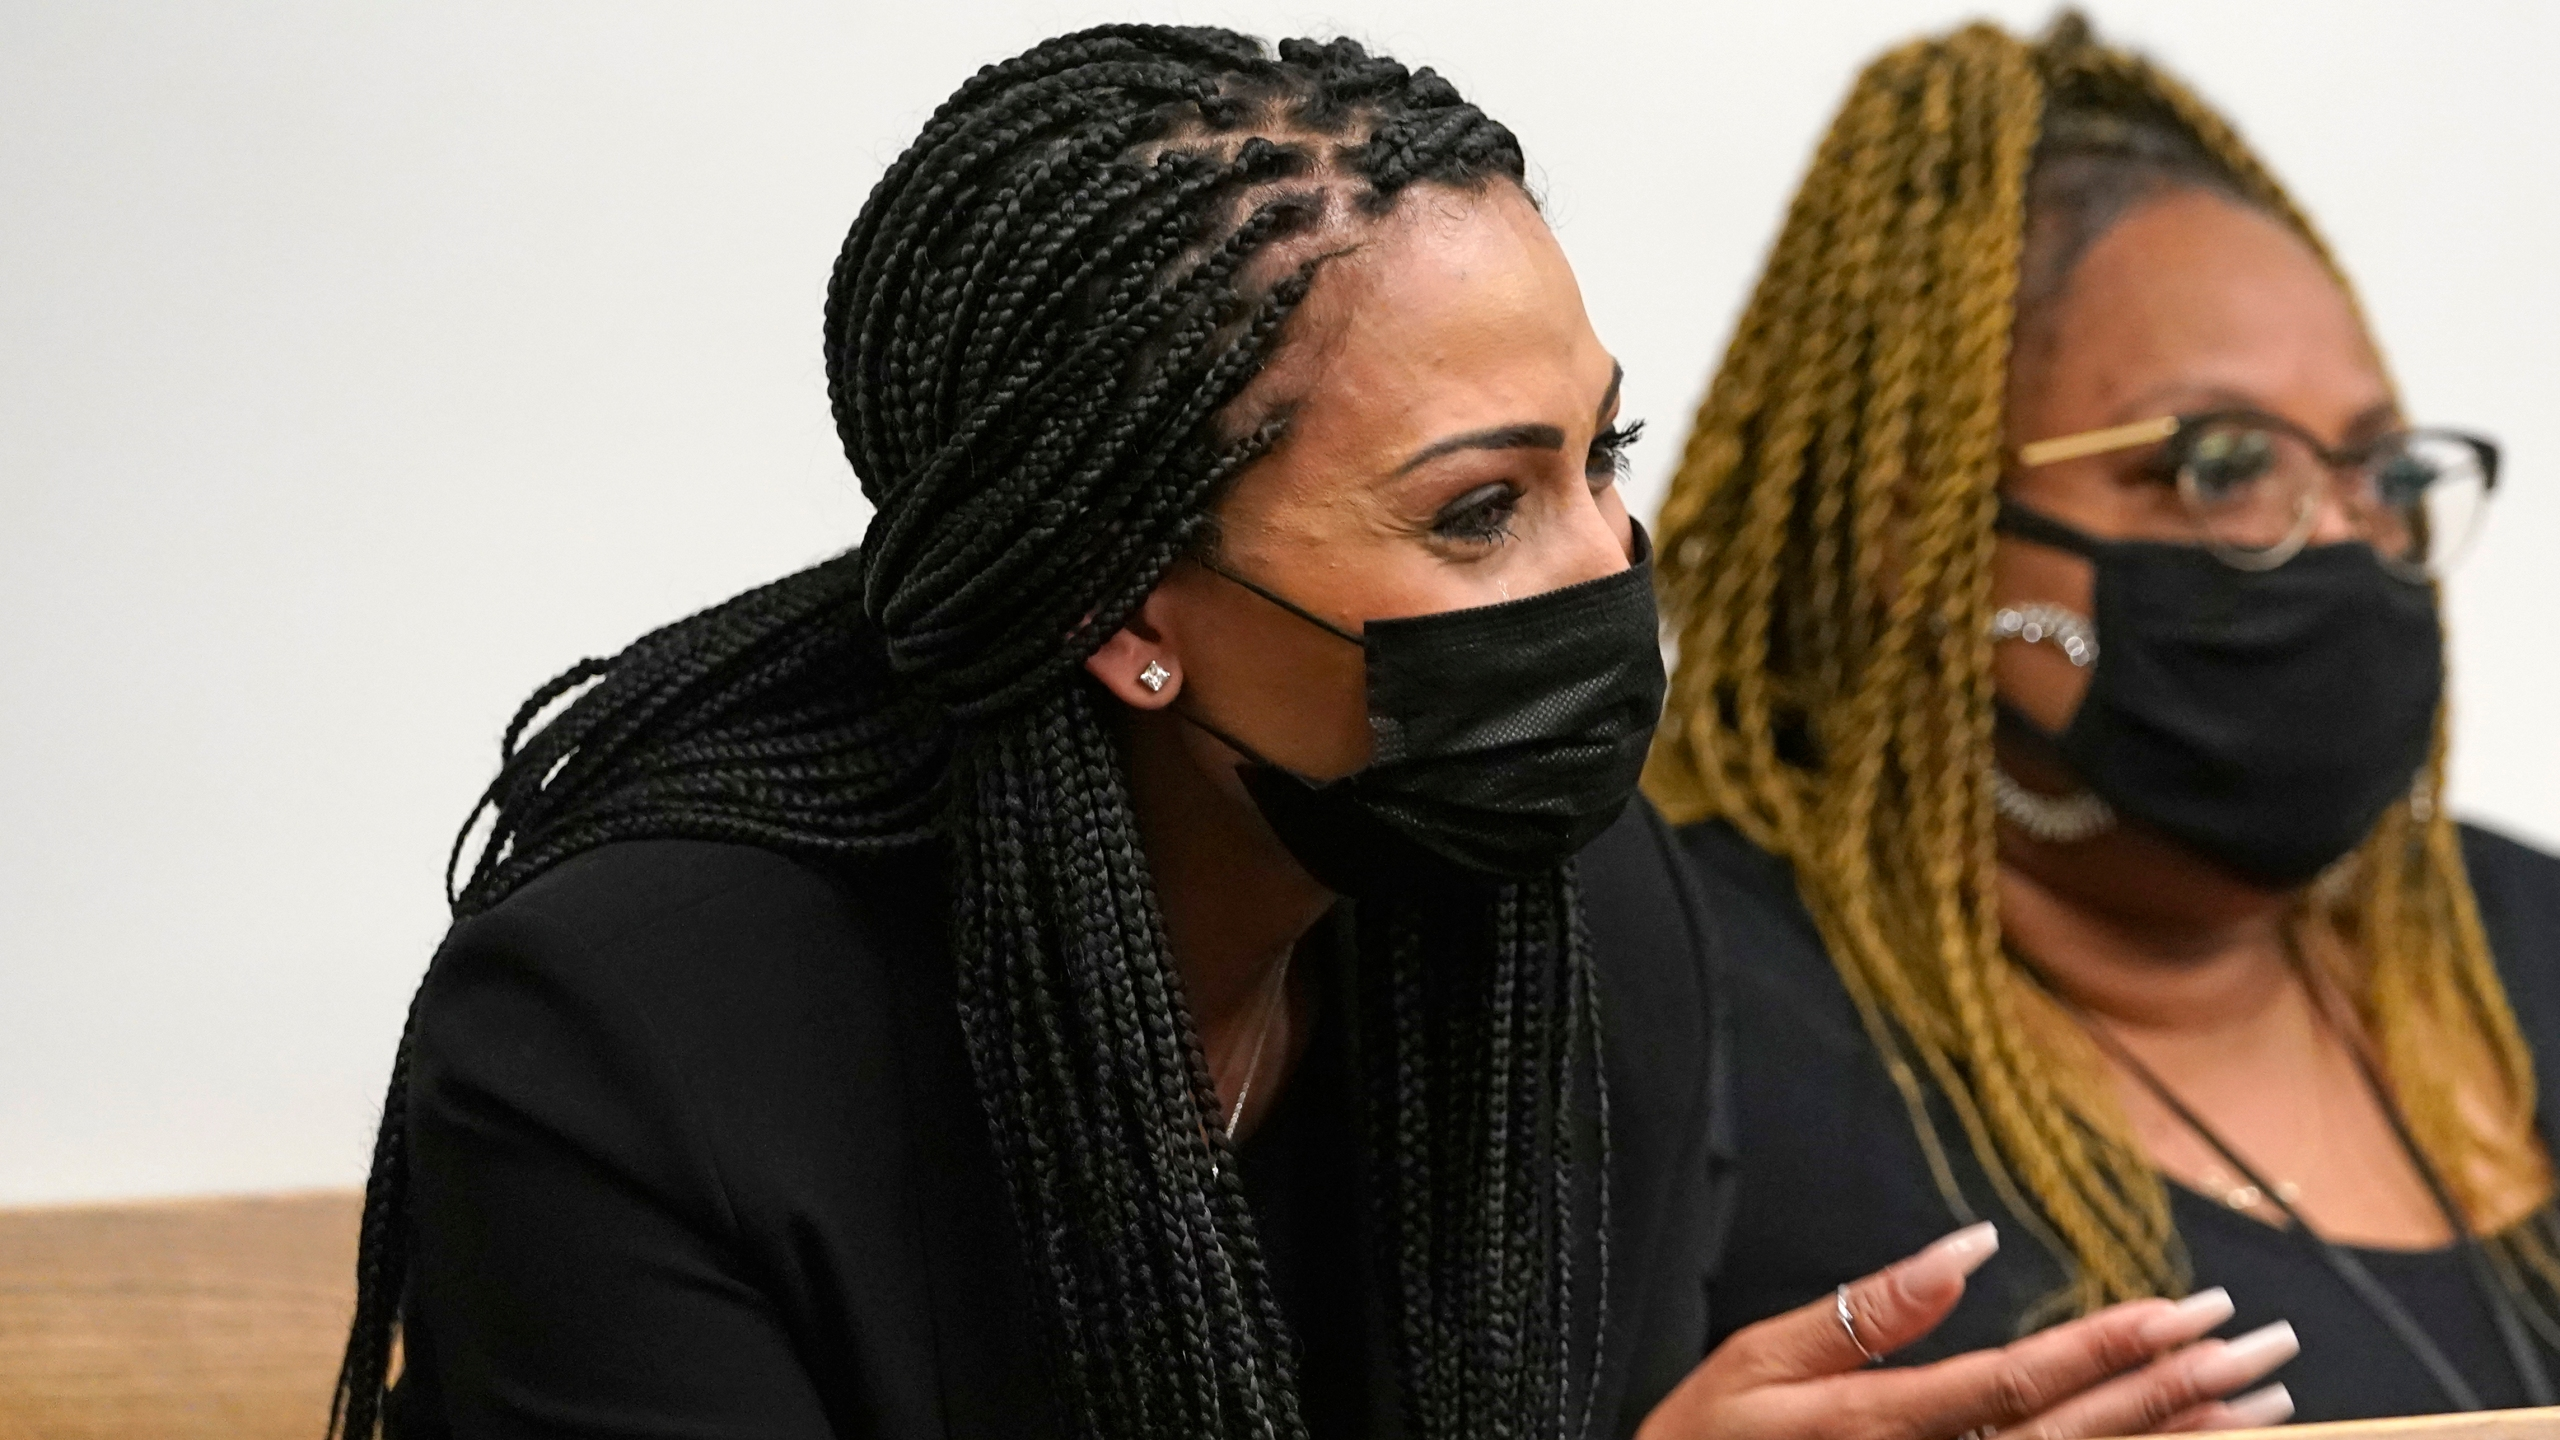 Ashley Sherman, left, wife of NFL player Richard Sherman, spoke in support of her husband at King County District Court, Thursday, July 15, 2021, in Seattle. (AP Photo/Elaine Thompson)